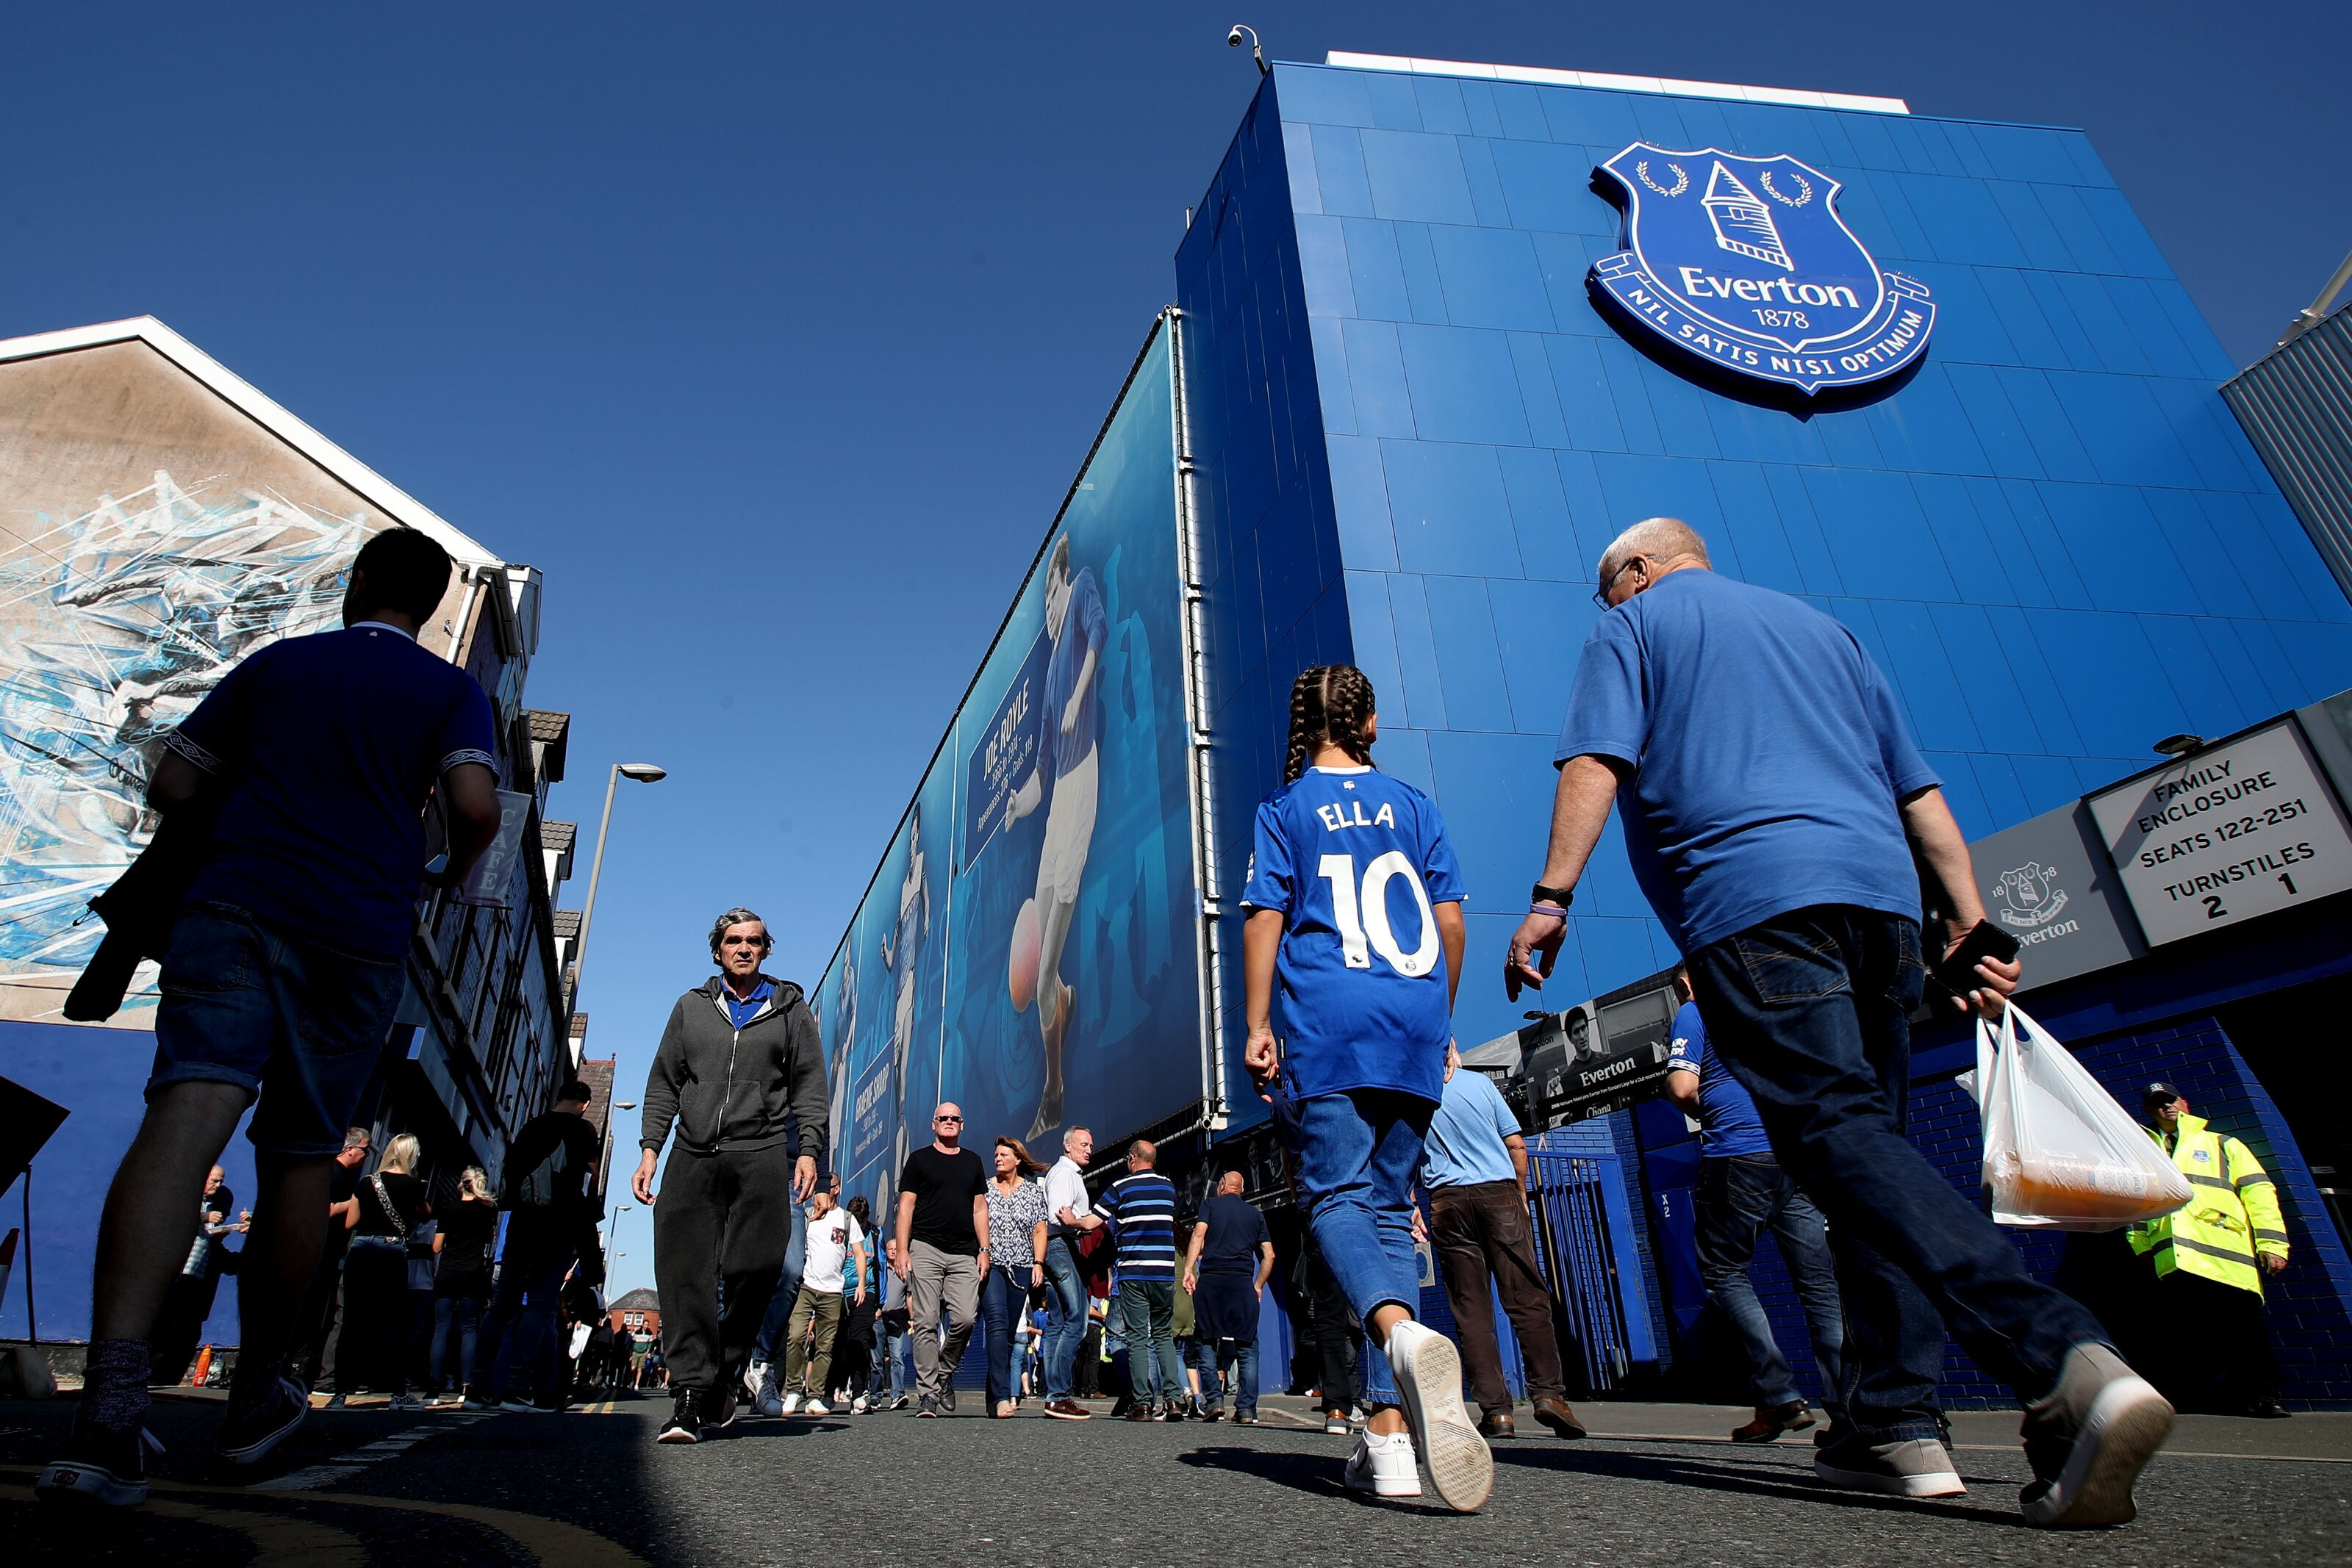 The Green Street Hammers Staff predict: West Ham away at Everton